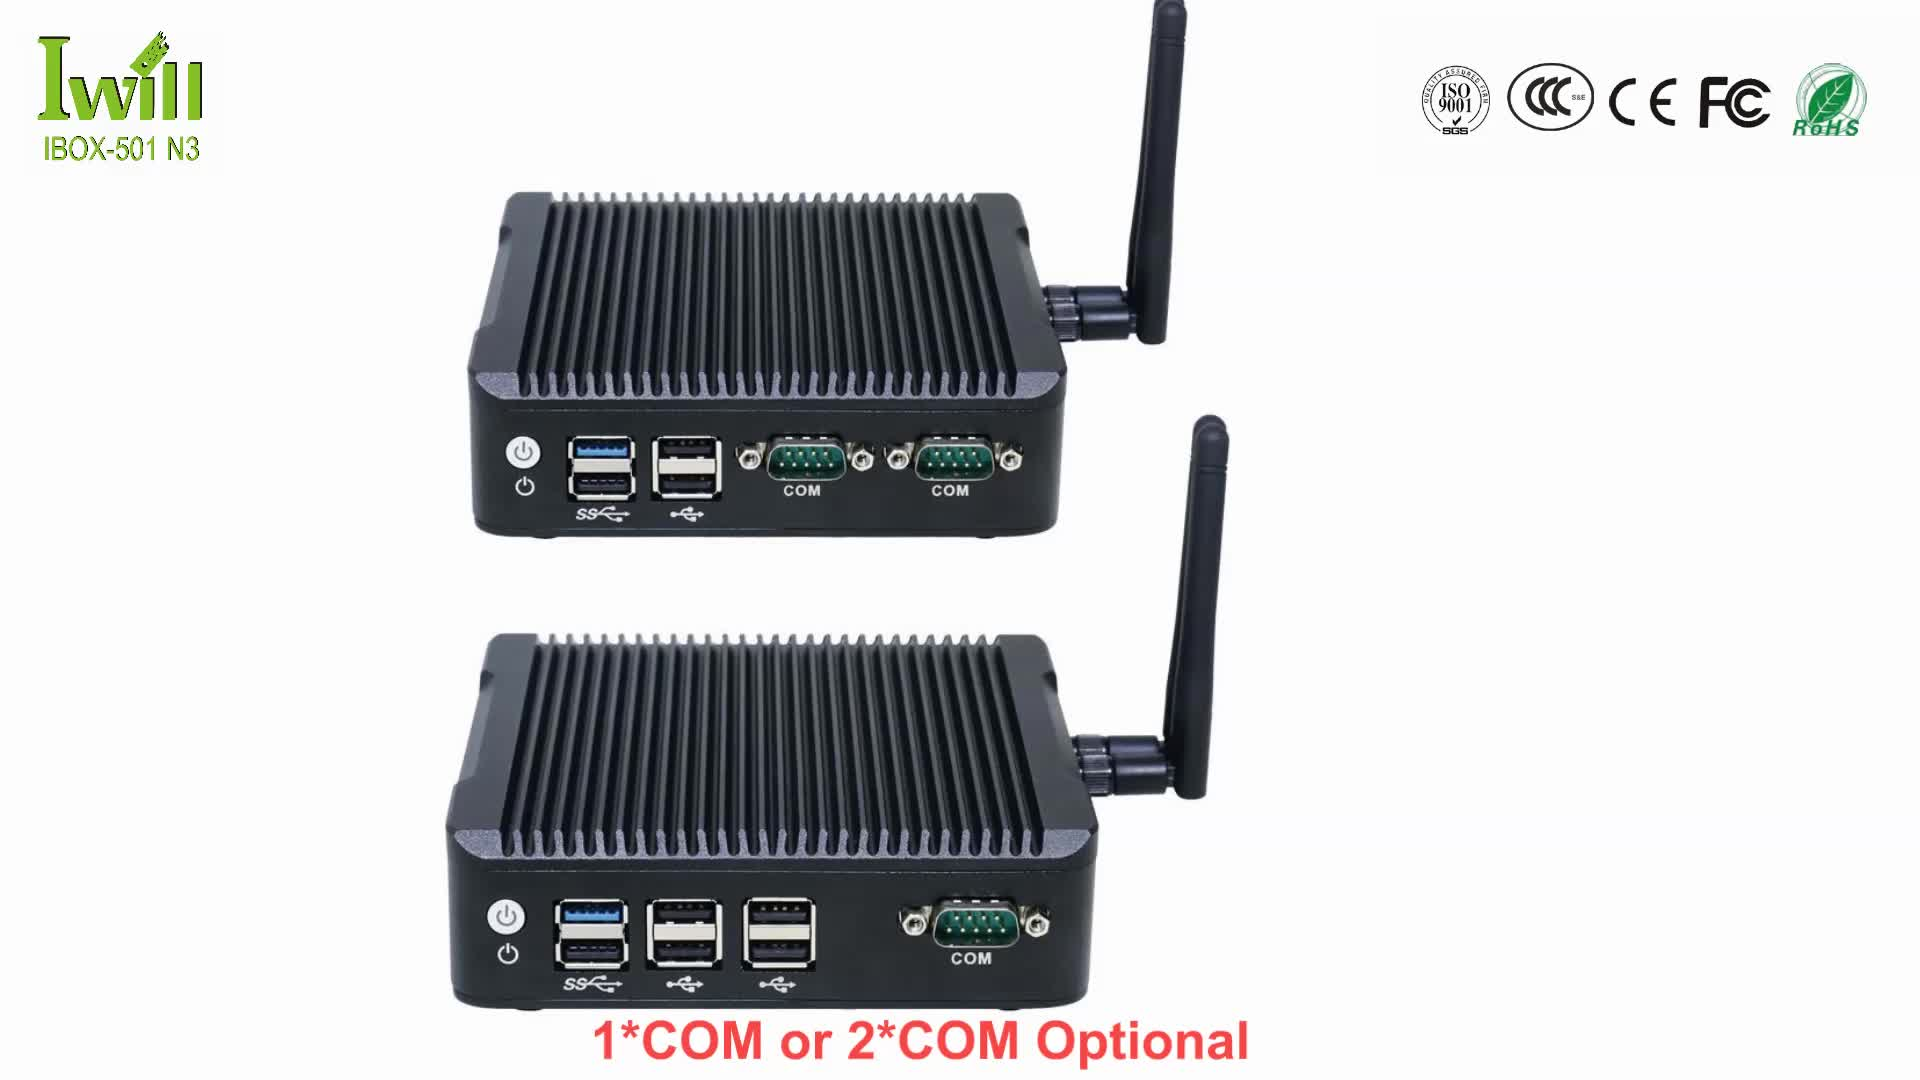 Ultra low power J1900 quad core fanless industrial 2 ethernet mini pc